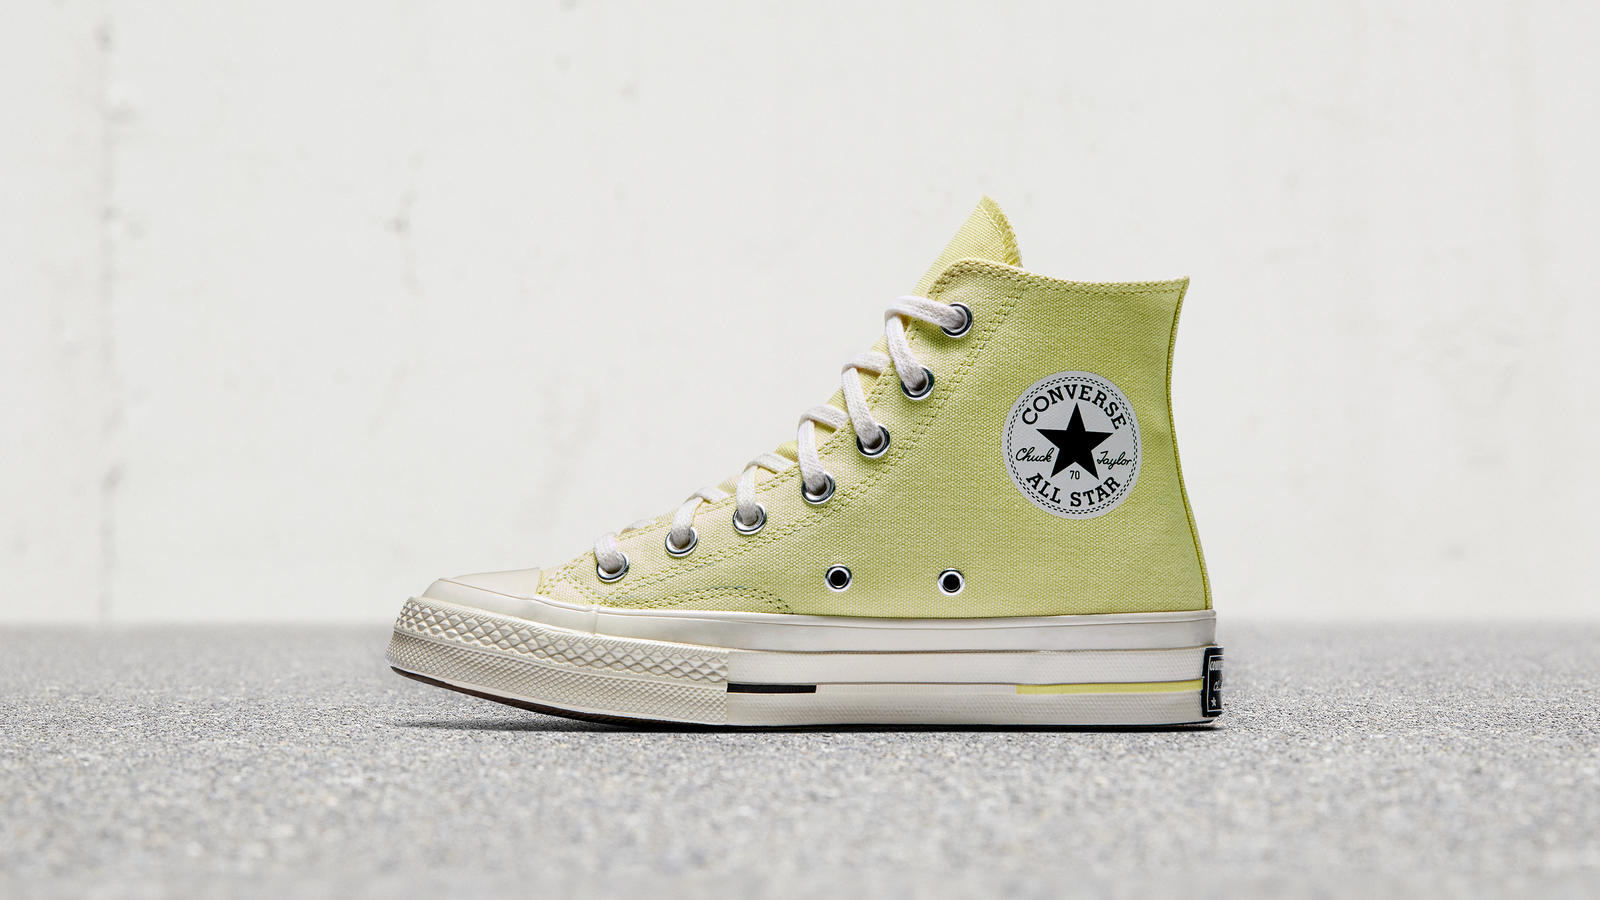 Converse chuck 70 bright canvas 01 hd 1600